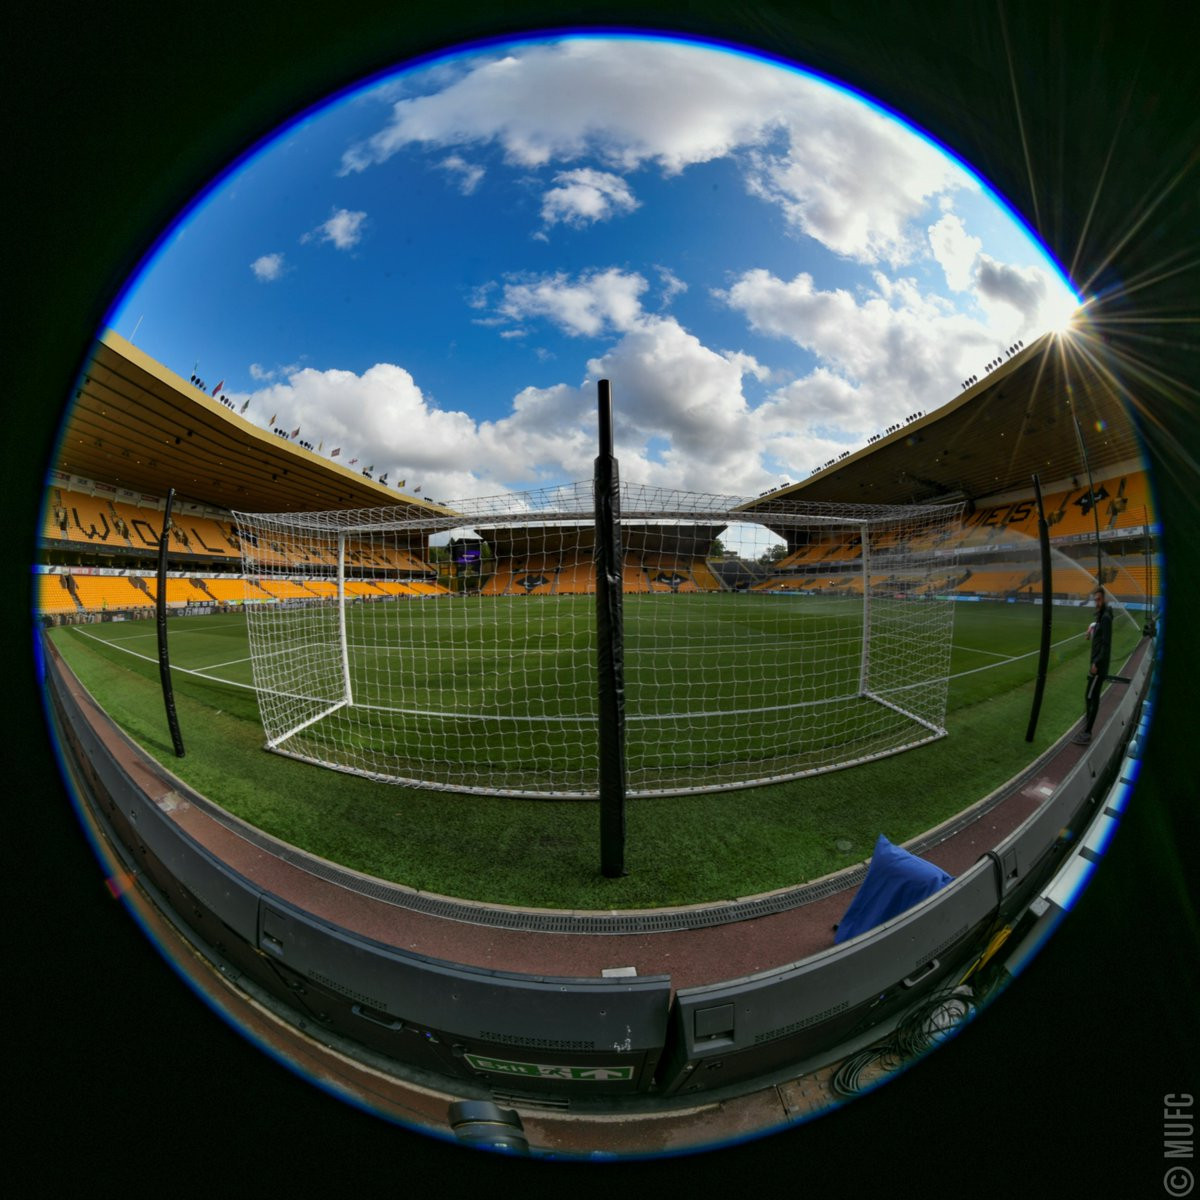 @ManUtd's photo on Molineux